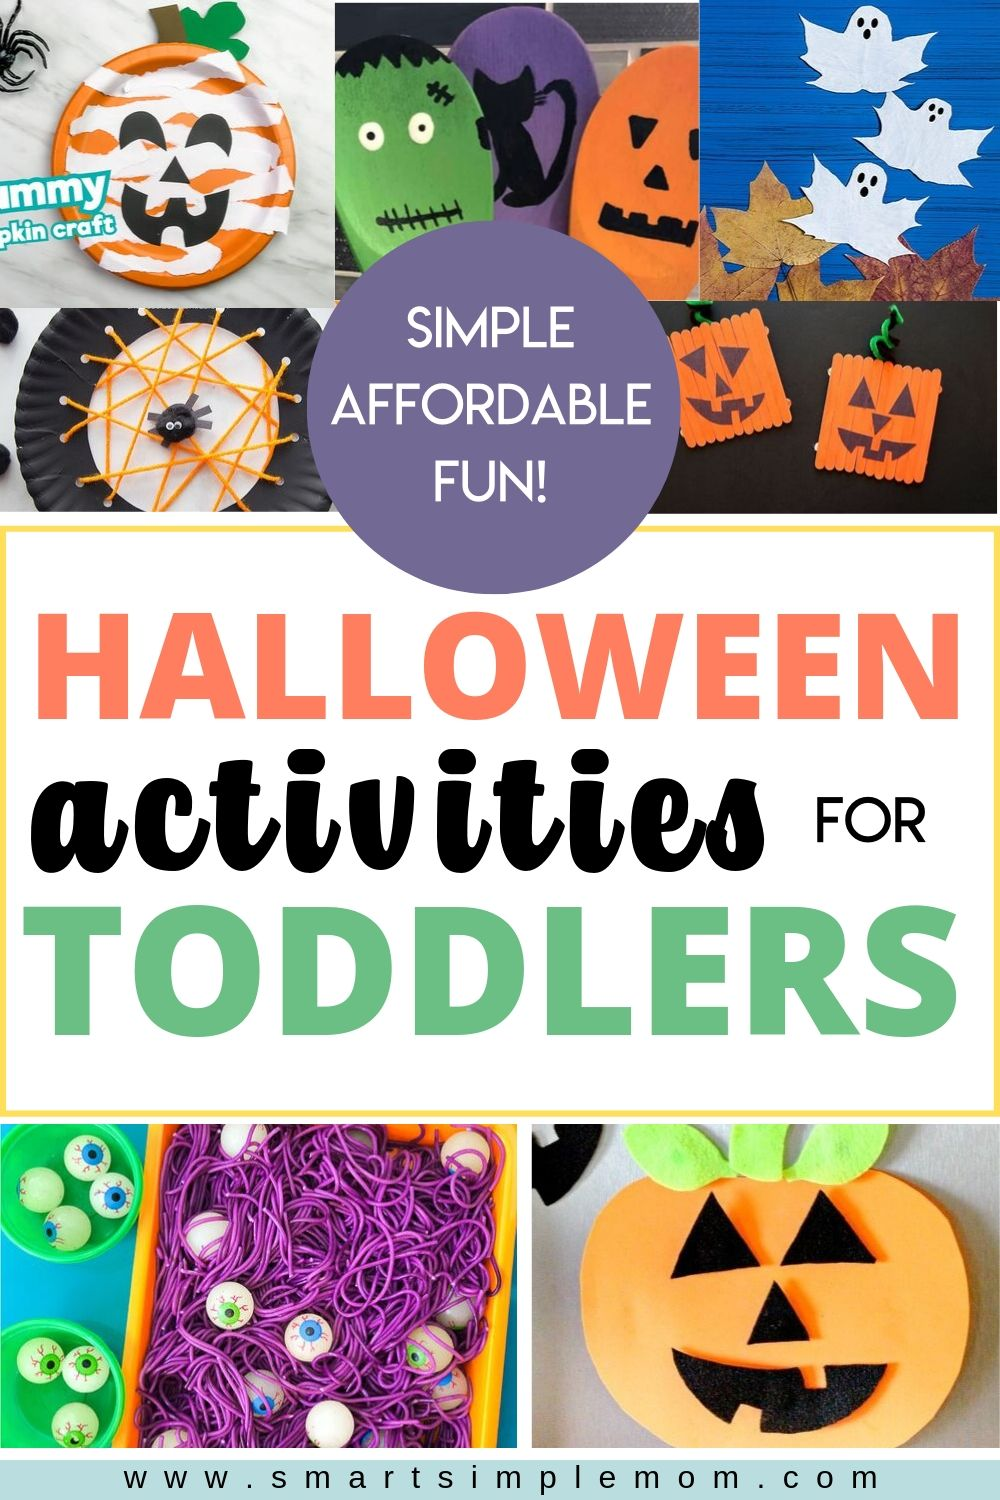 These HALLOWEEN ACTIVITIES FOR TODDLERS are all SIMPLE to create, use super AFFORDABLE materials, and are so much FUN to make with your toddler! #halloween2019 #halloweencrafts #halloweenactivities